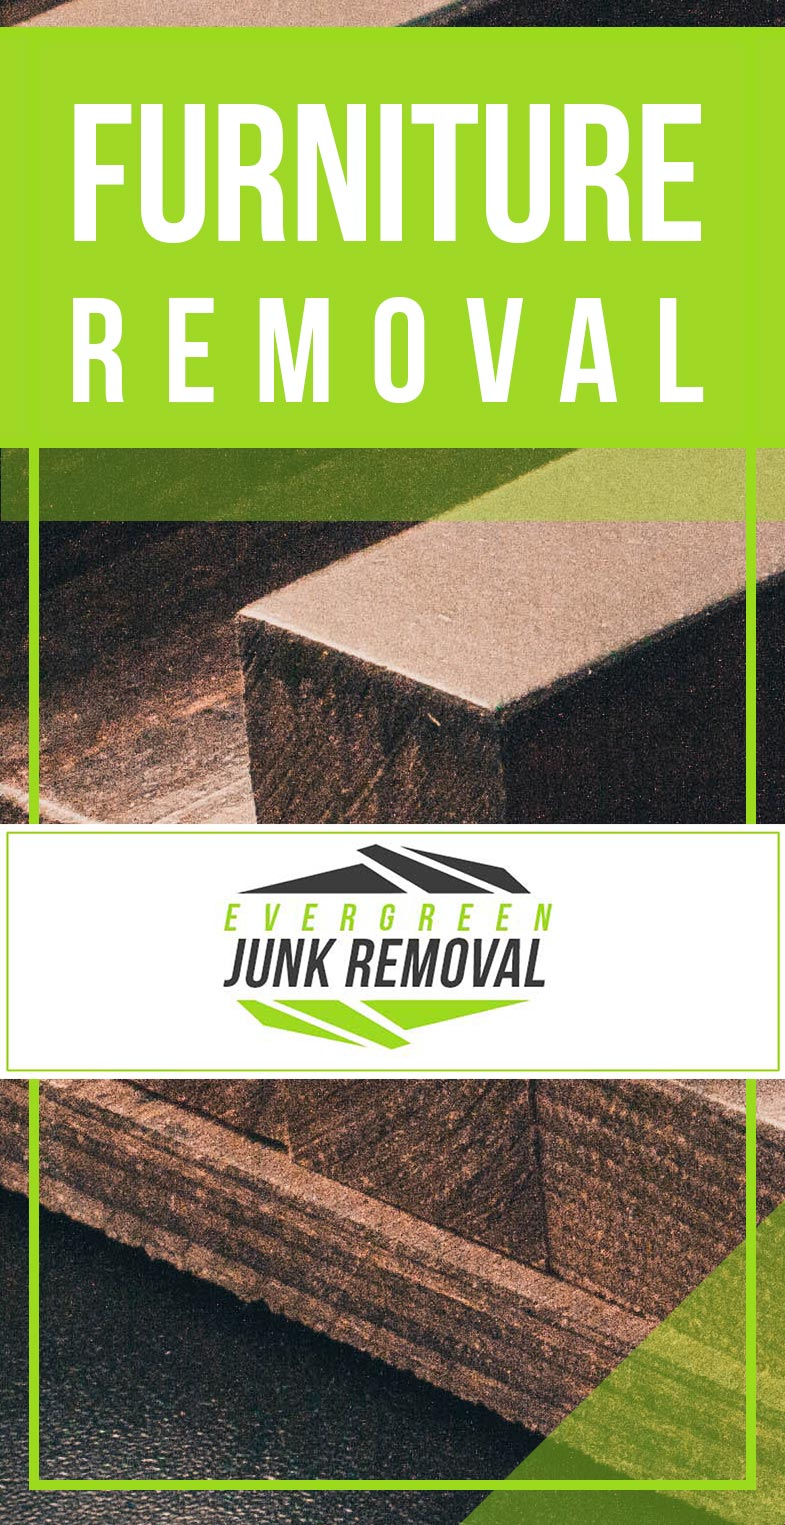 Bloomington Furniture Removal